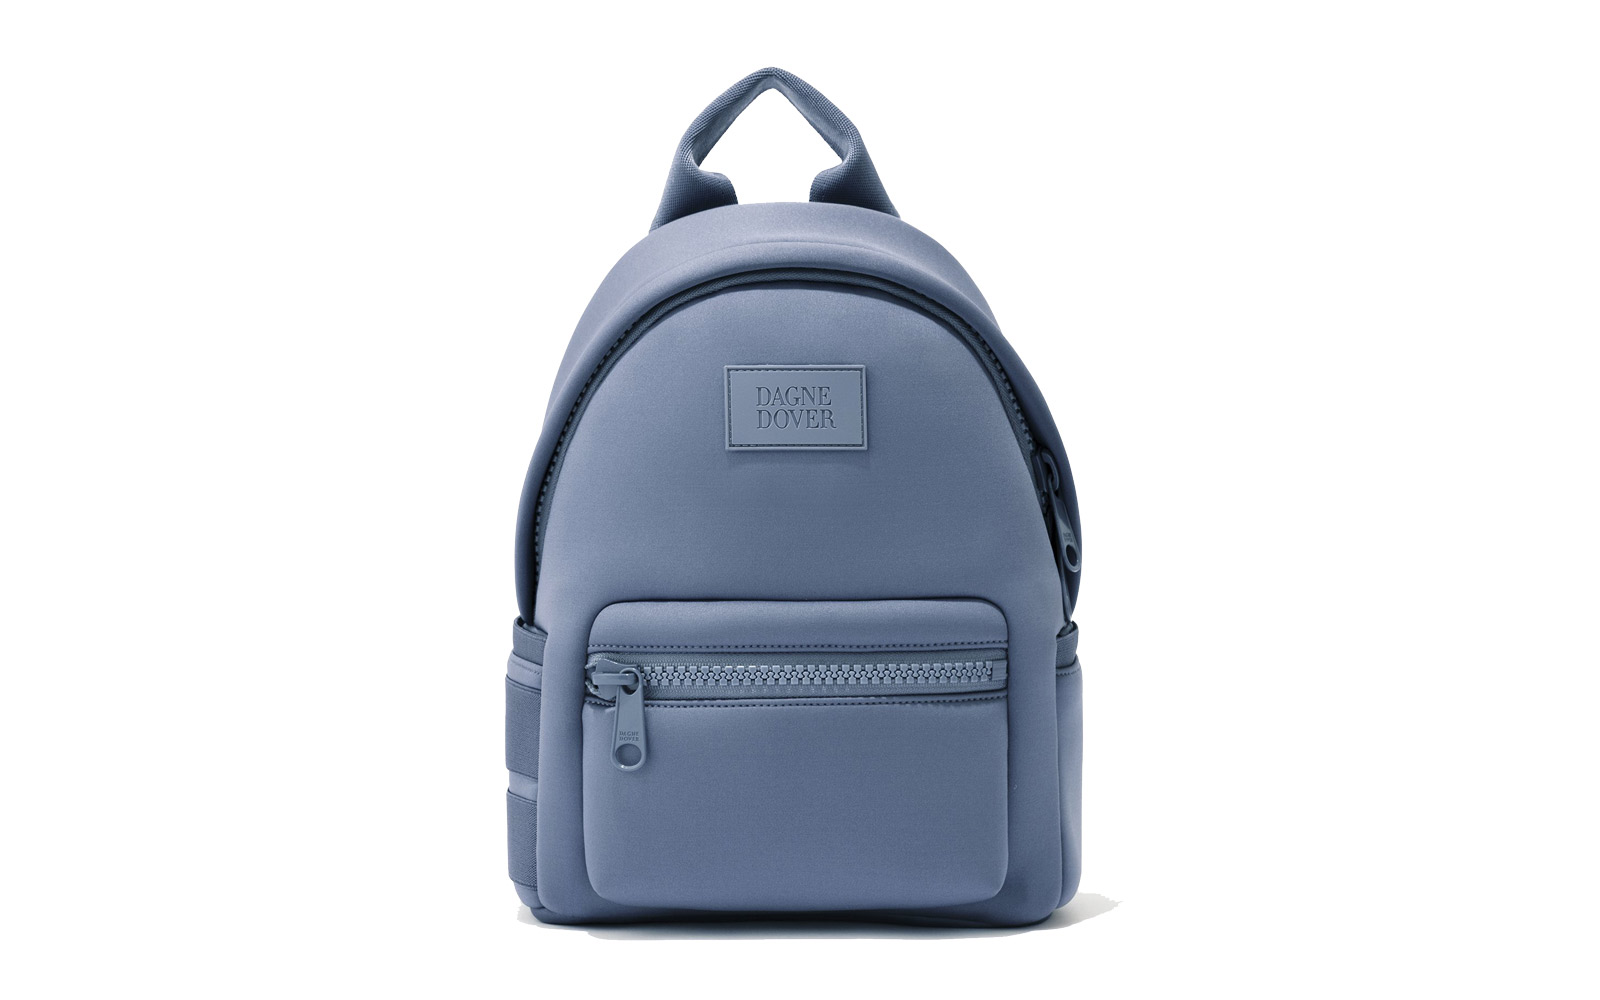 73106c9c117f 11 Small Backpacks With Just Enough Room for the Essentials | Travel ...